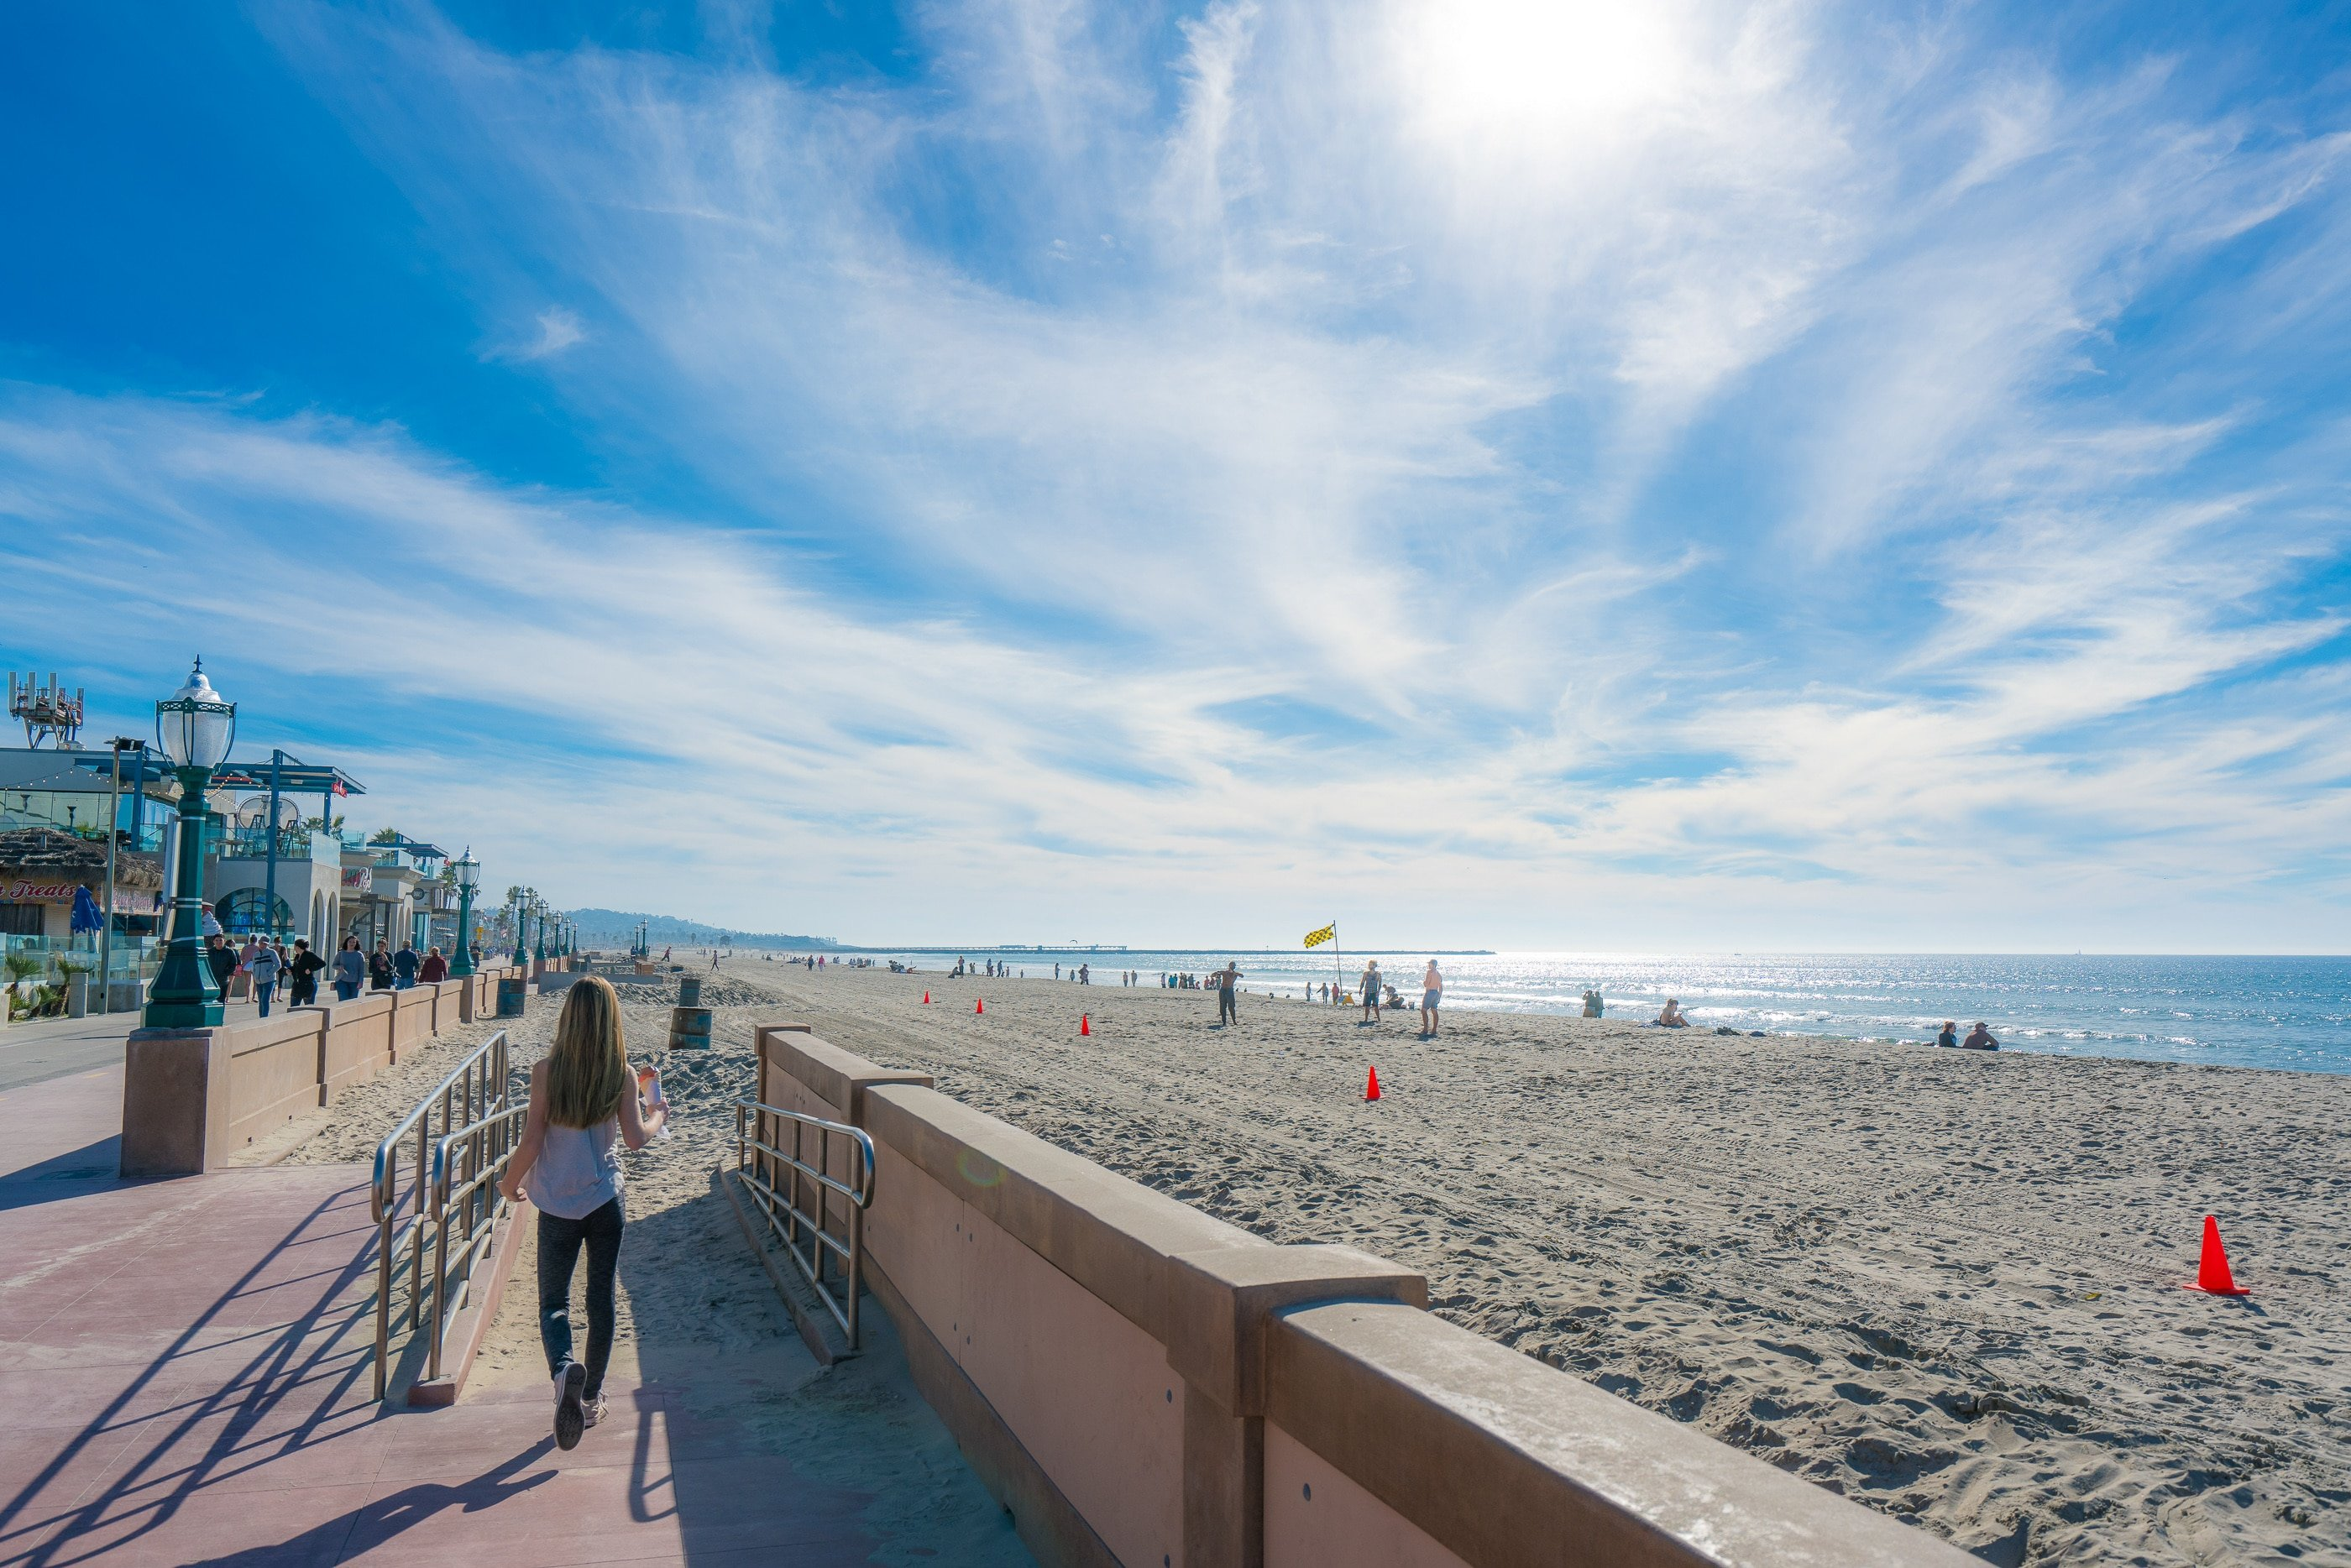 Where To Go To The Beach In Mission Beach